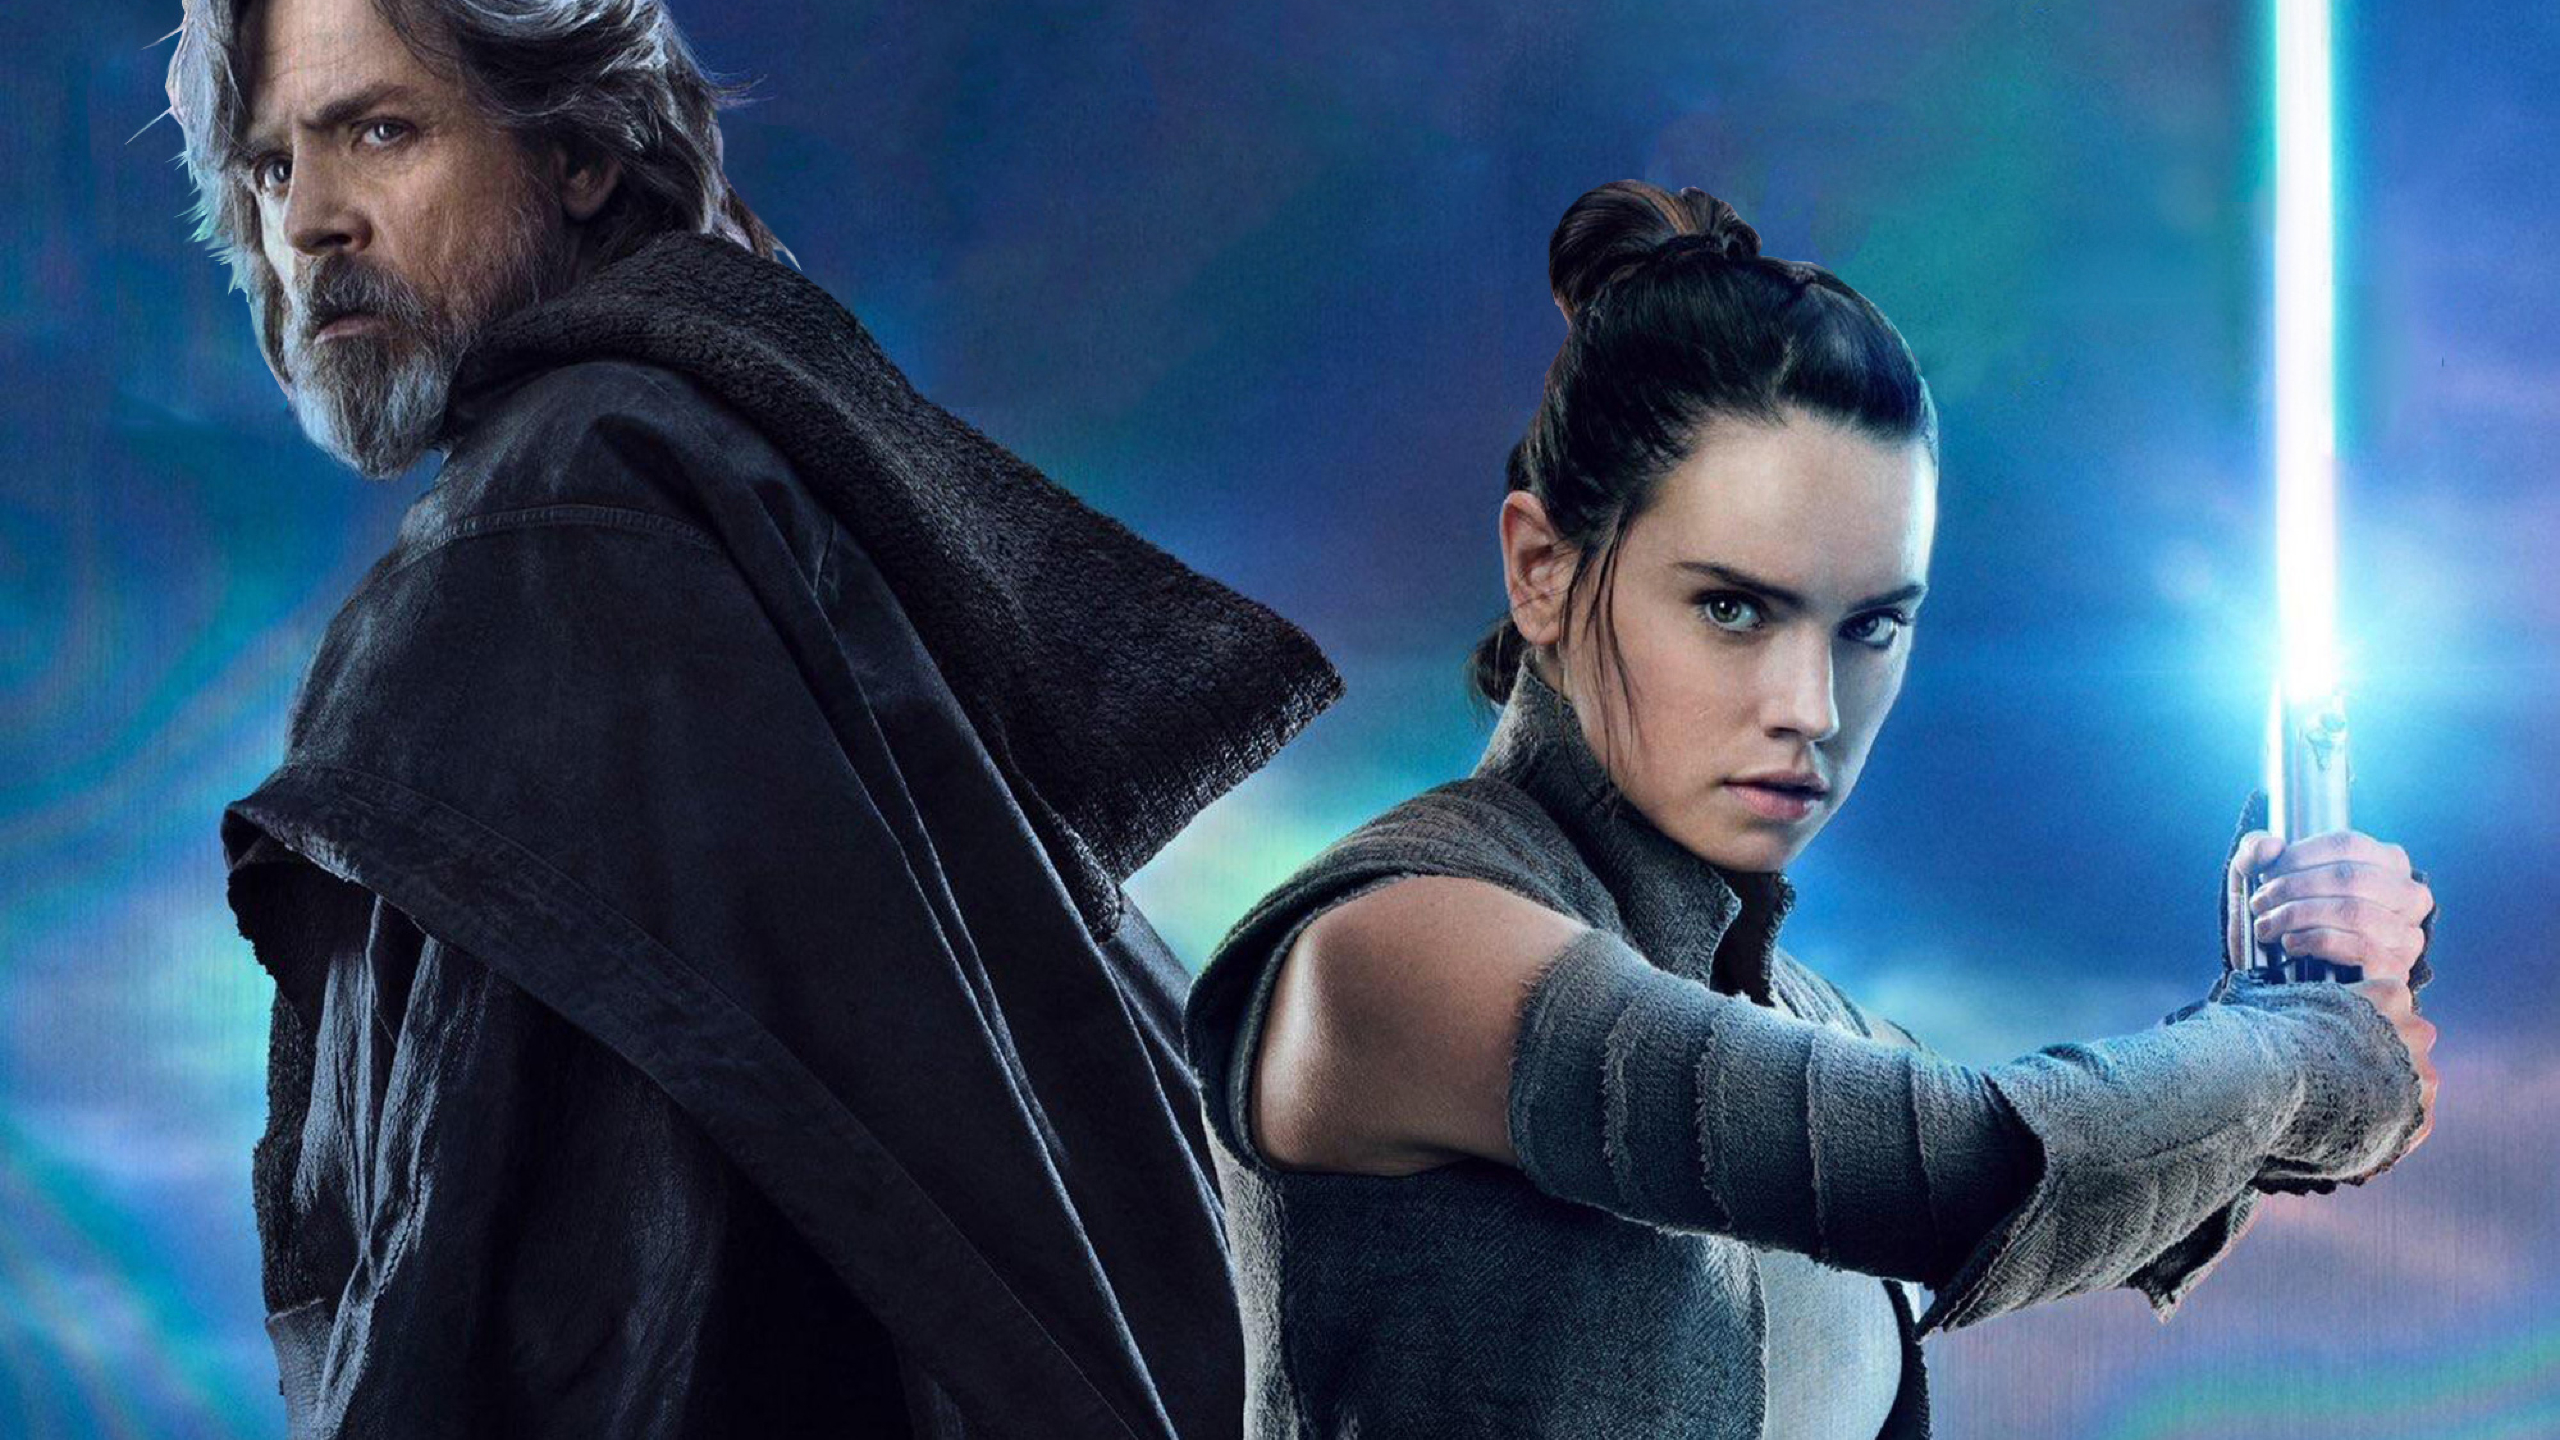 2560x1440 Rey And Luke Star Wars The Last Jedi 1440p Resolution Wallpaper Hd Movies 4k Wallpapers Images Photos And Background